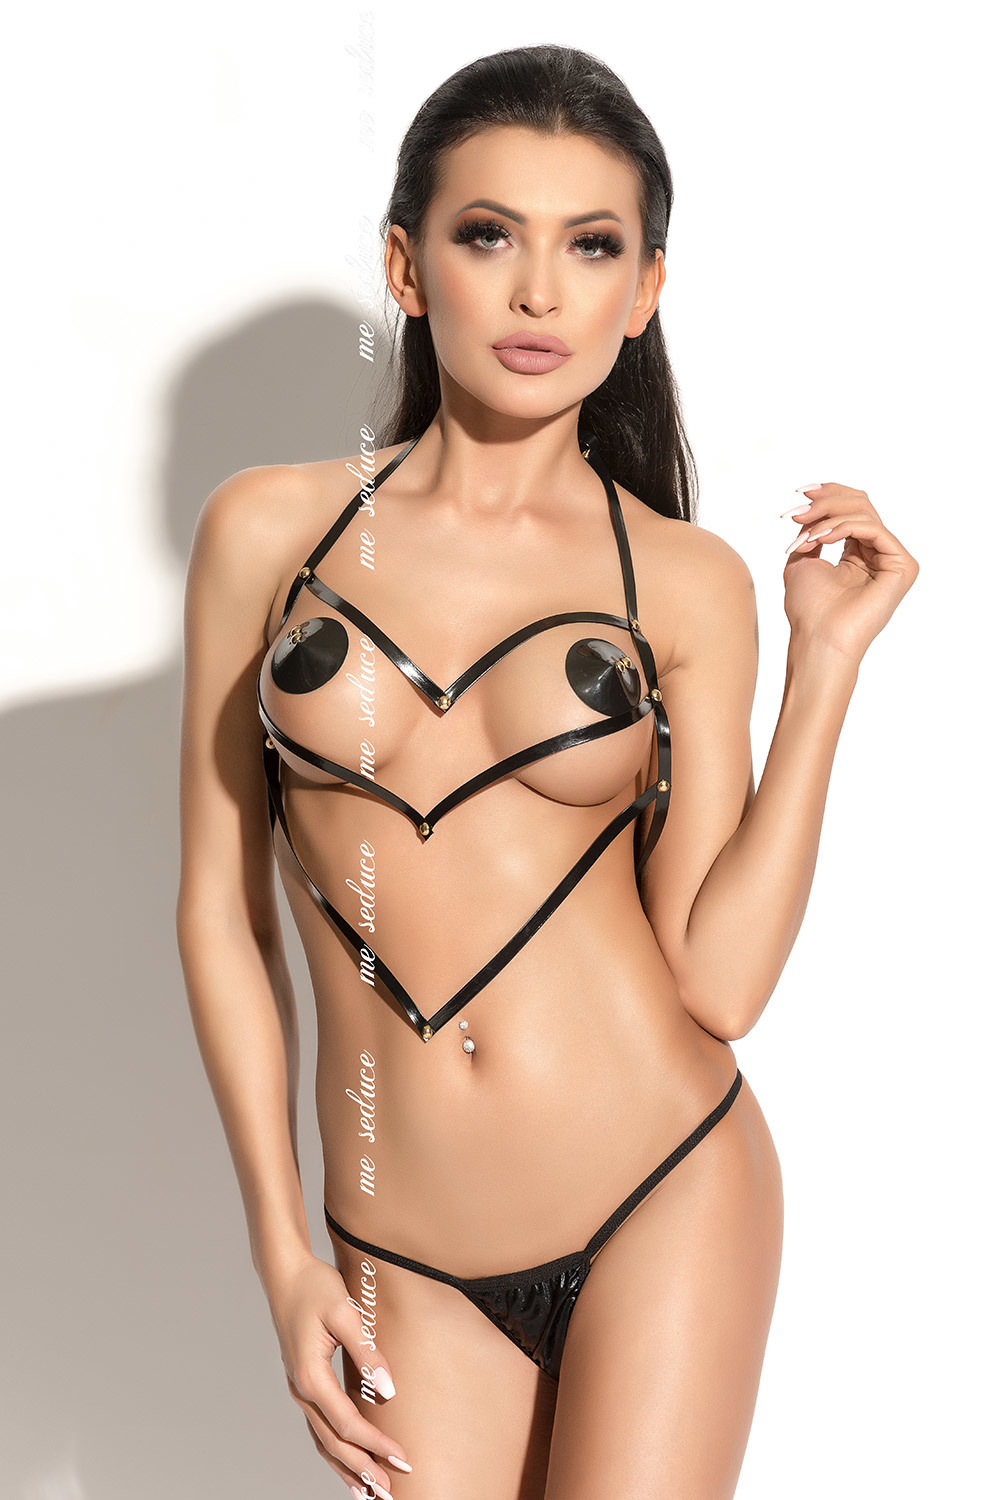 mes_harness_5_black_0